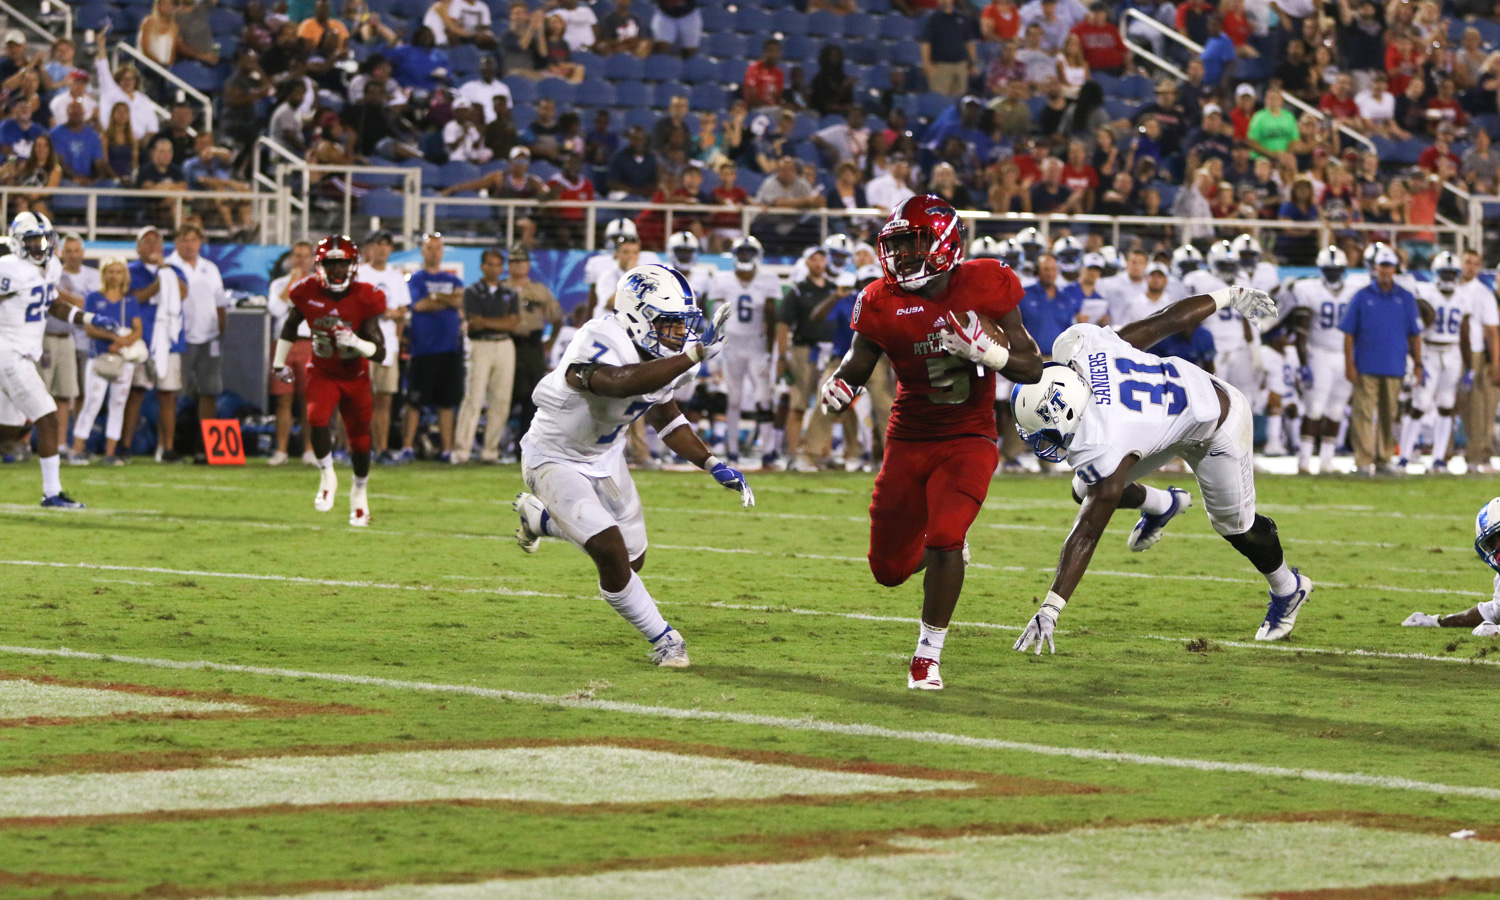 FAU runs away from WKU in the fourth quarter